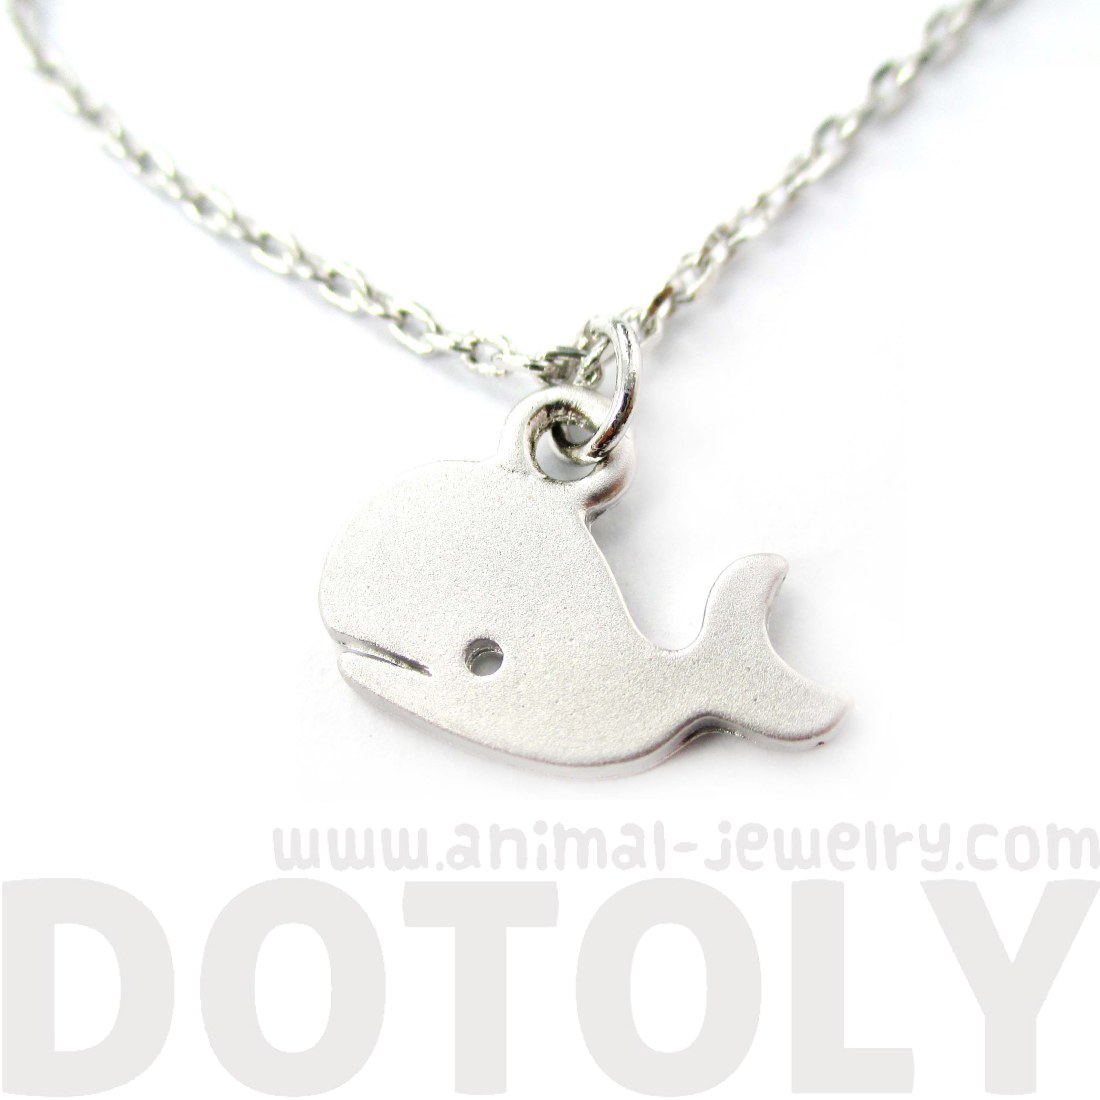 Cute Simple Whale Silhouette Animal Charm Necklace in Silver ...